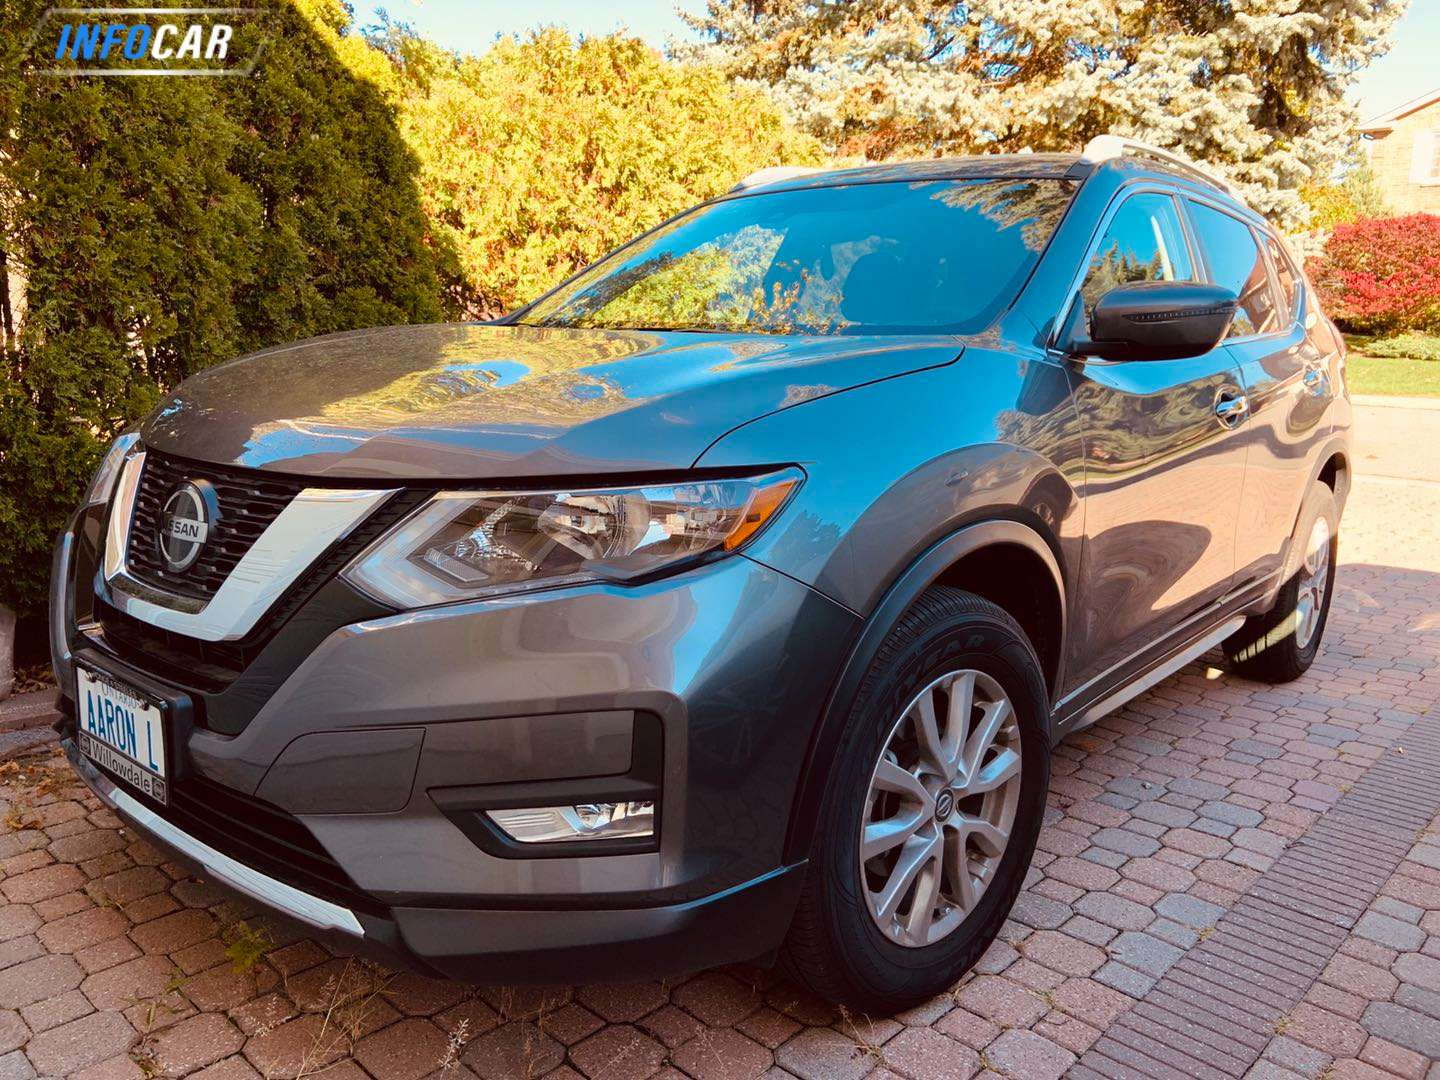 2020 Nissan Rogue Rogue - INFOCAR - Toronto's Most Comprehensive New and Used Auto Trading Platform